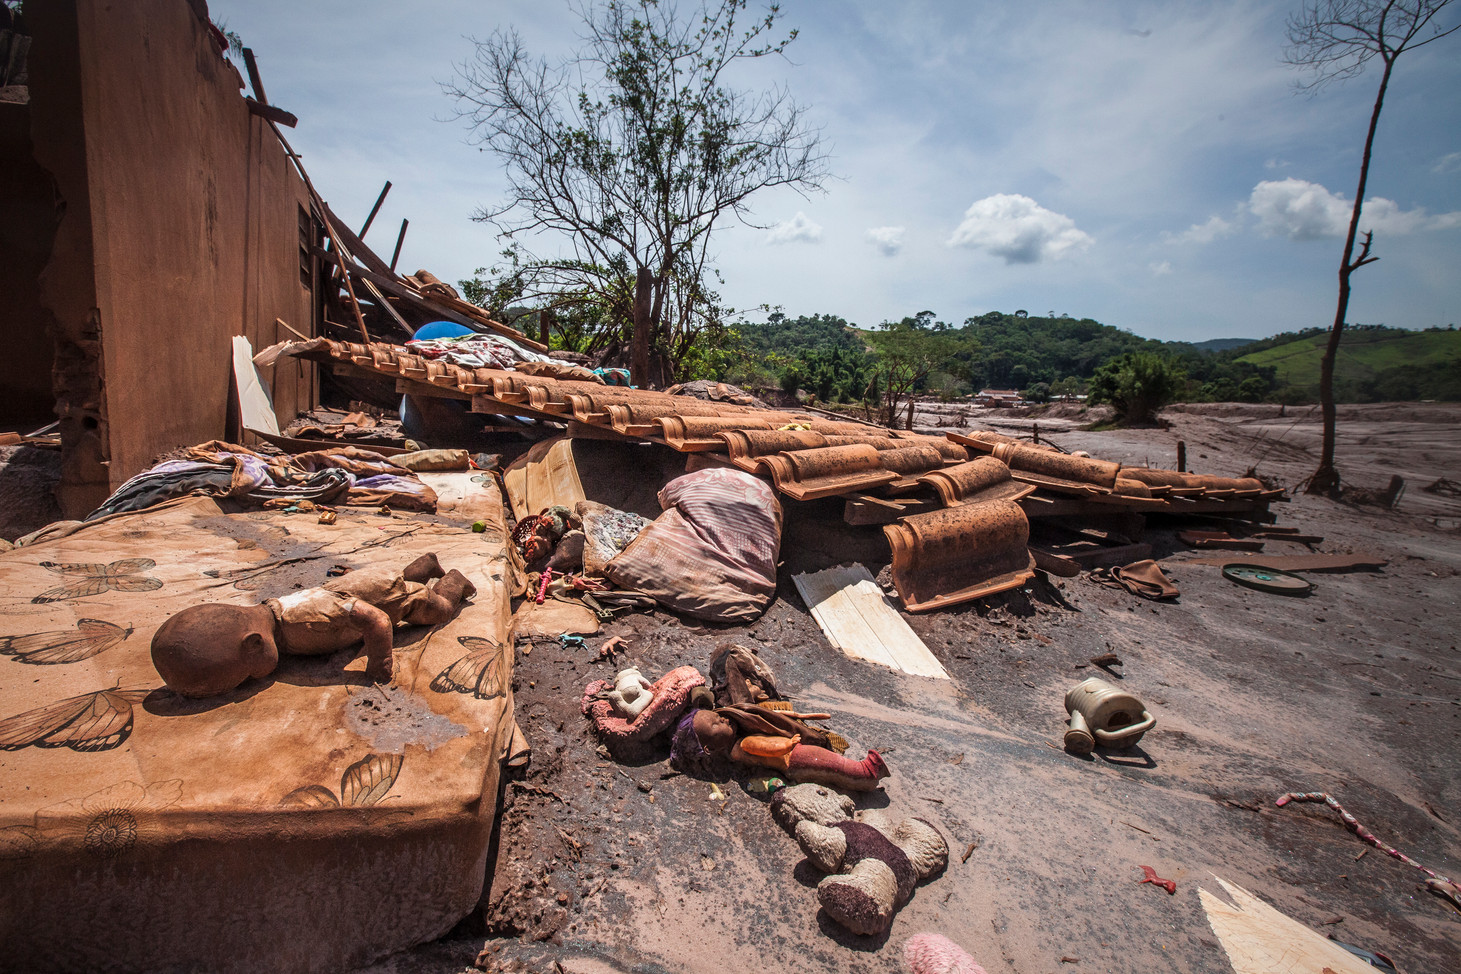 Remains of one of the villages affected by the mudslides. Paracatu De Baixo, Minas Gerais, BR.